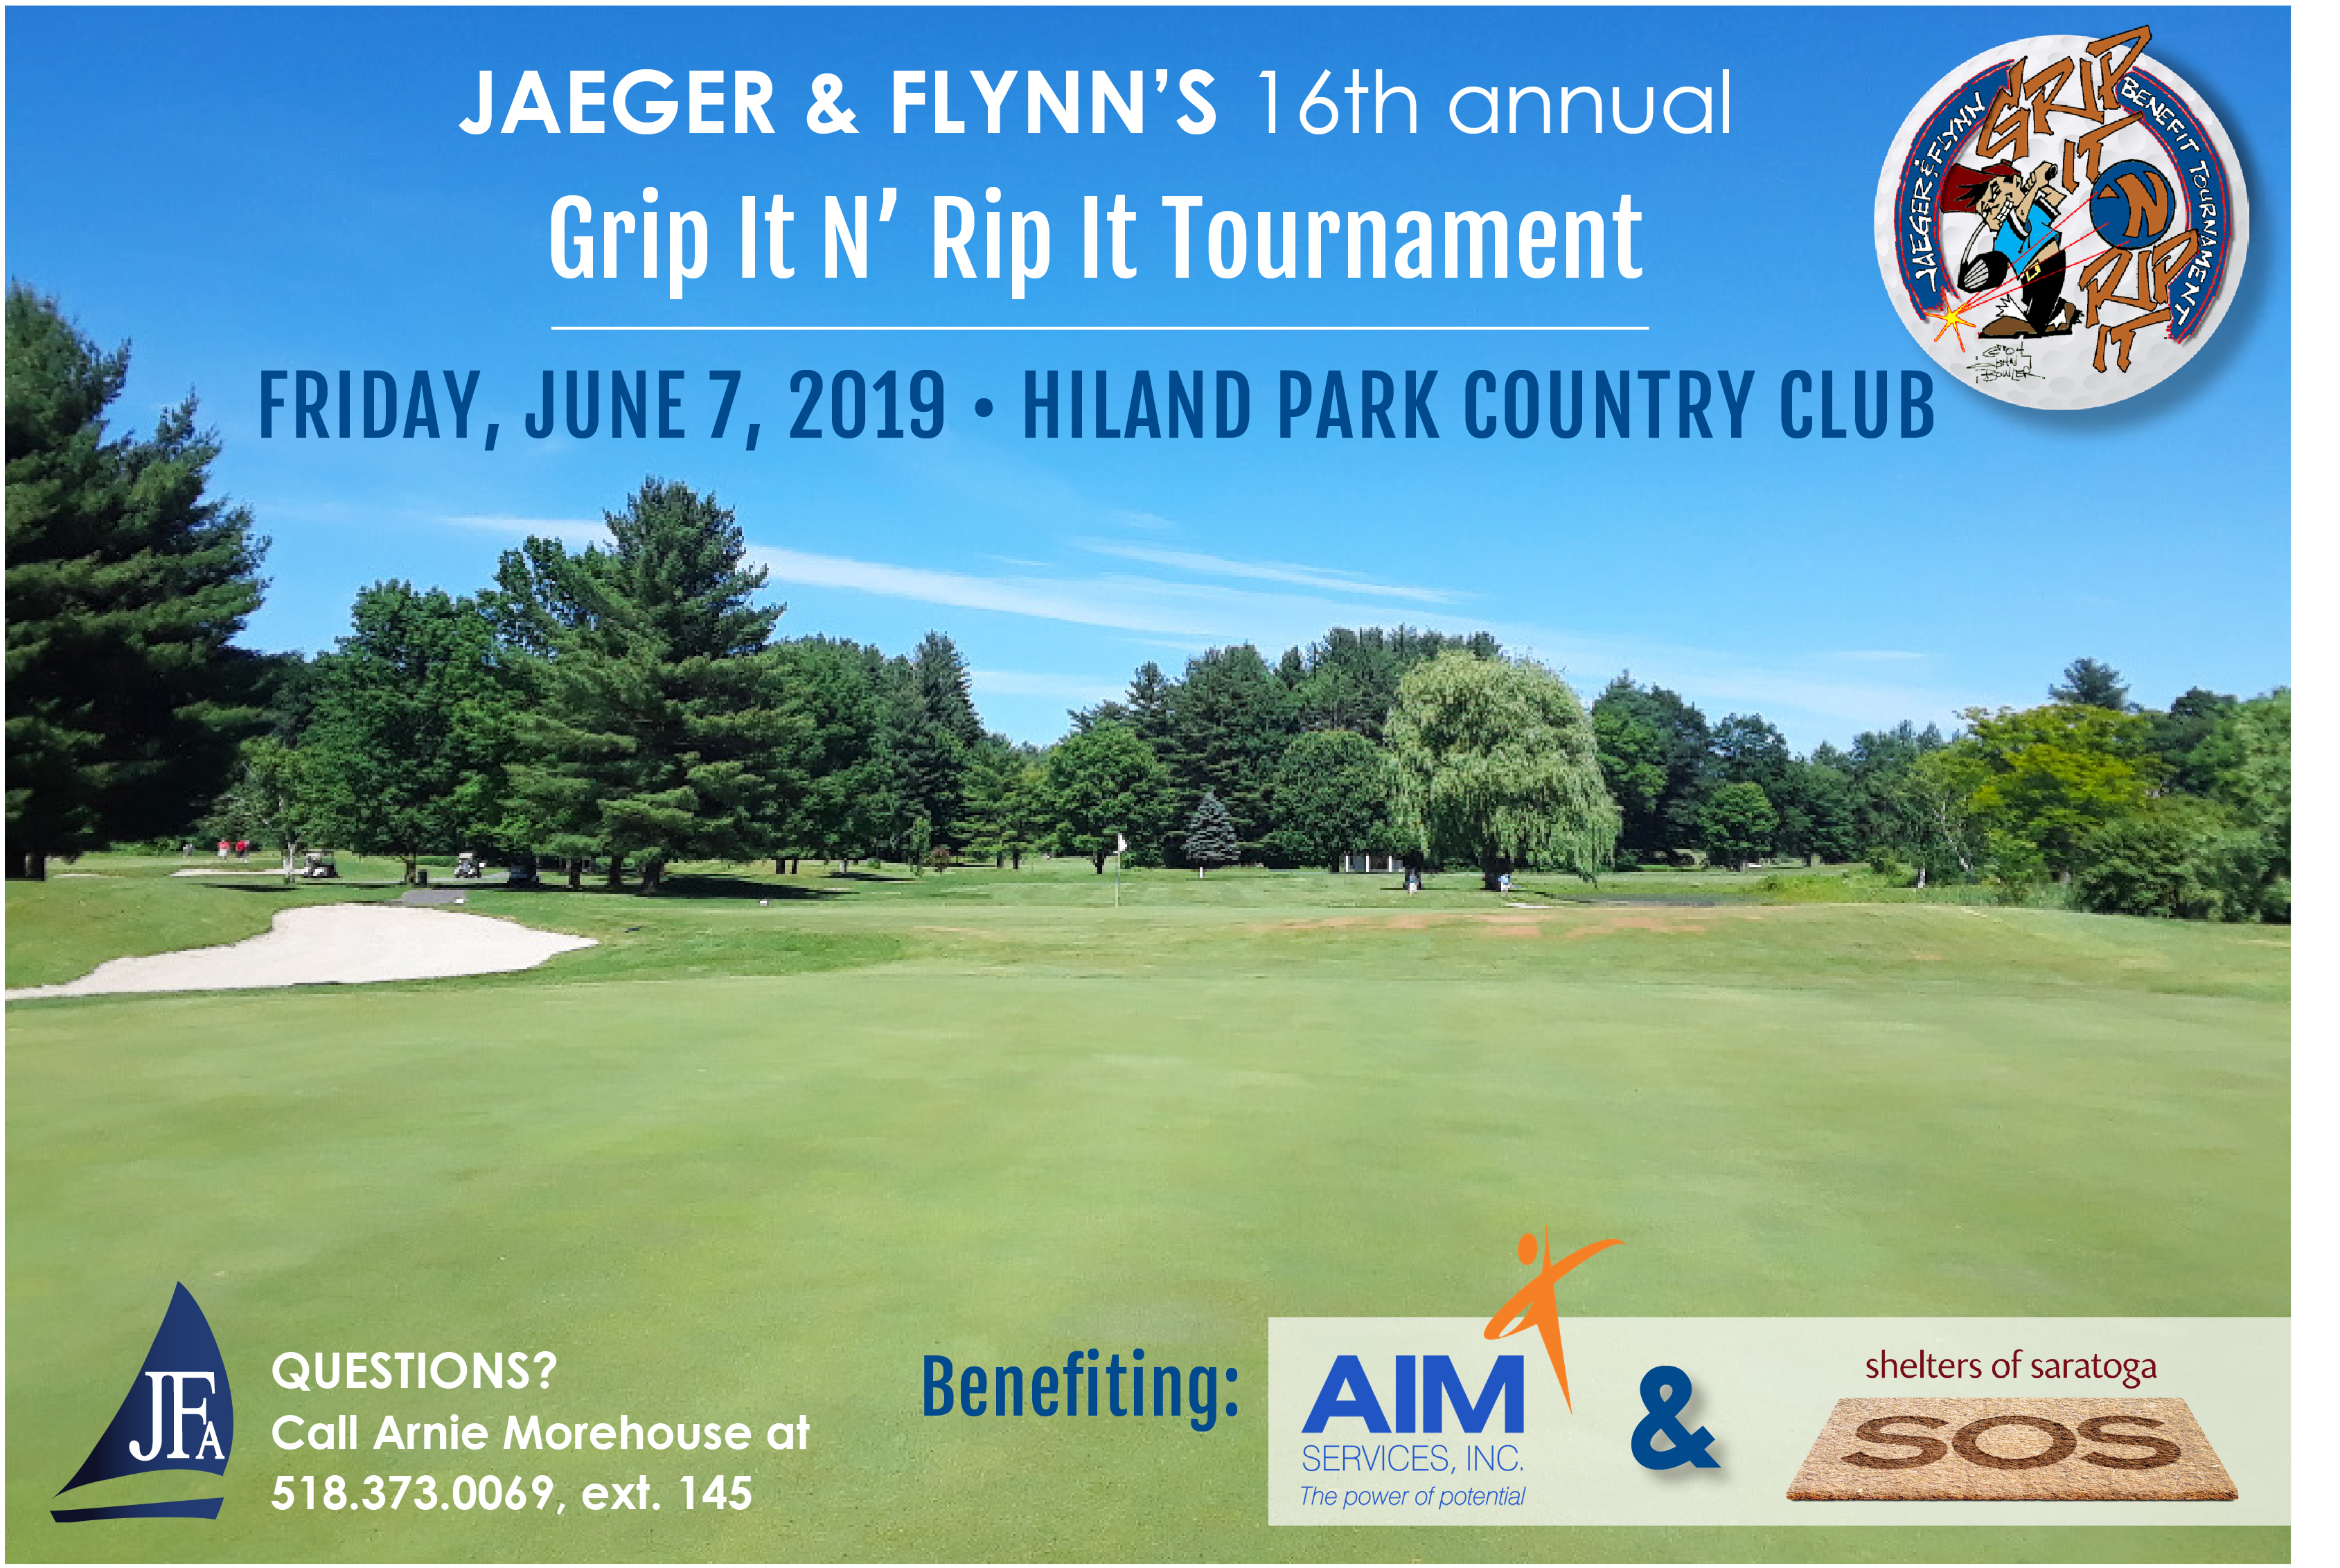 golf course image for grip it and rip it golf tournament on june 7, 2019